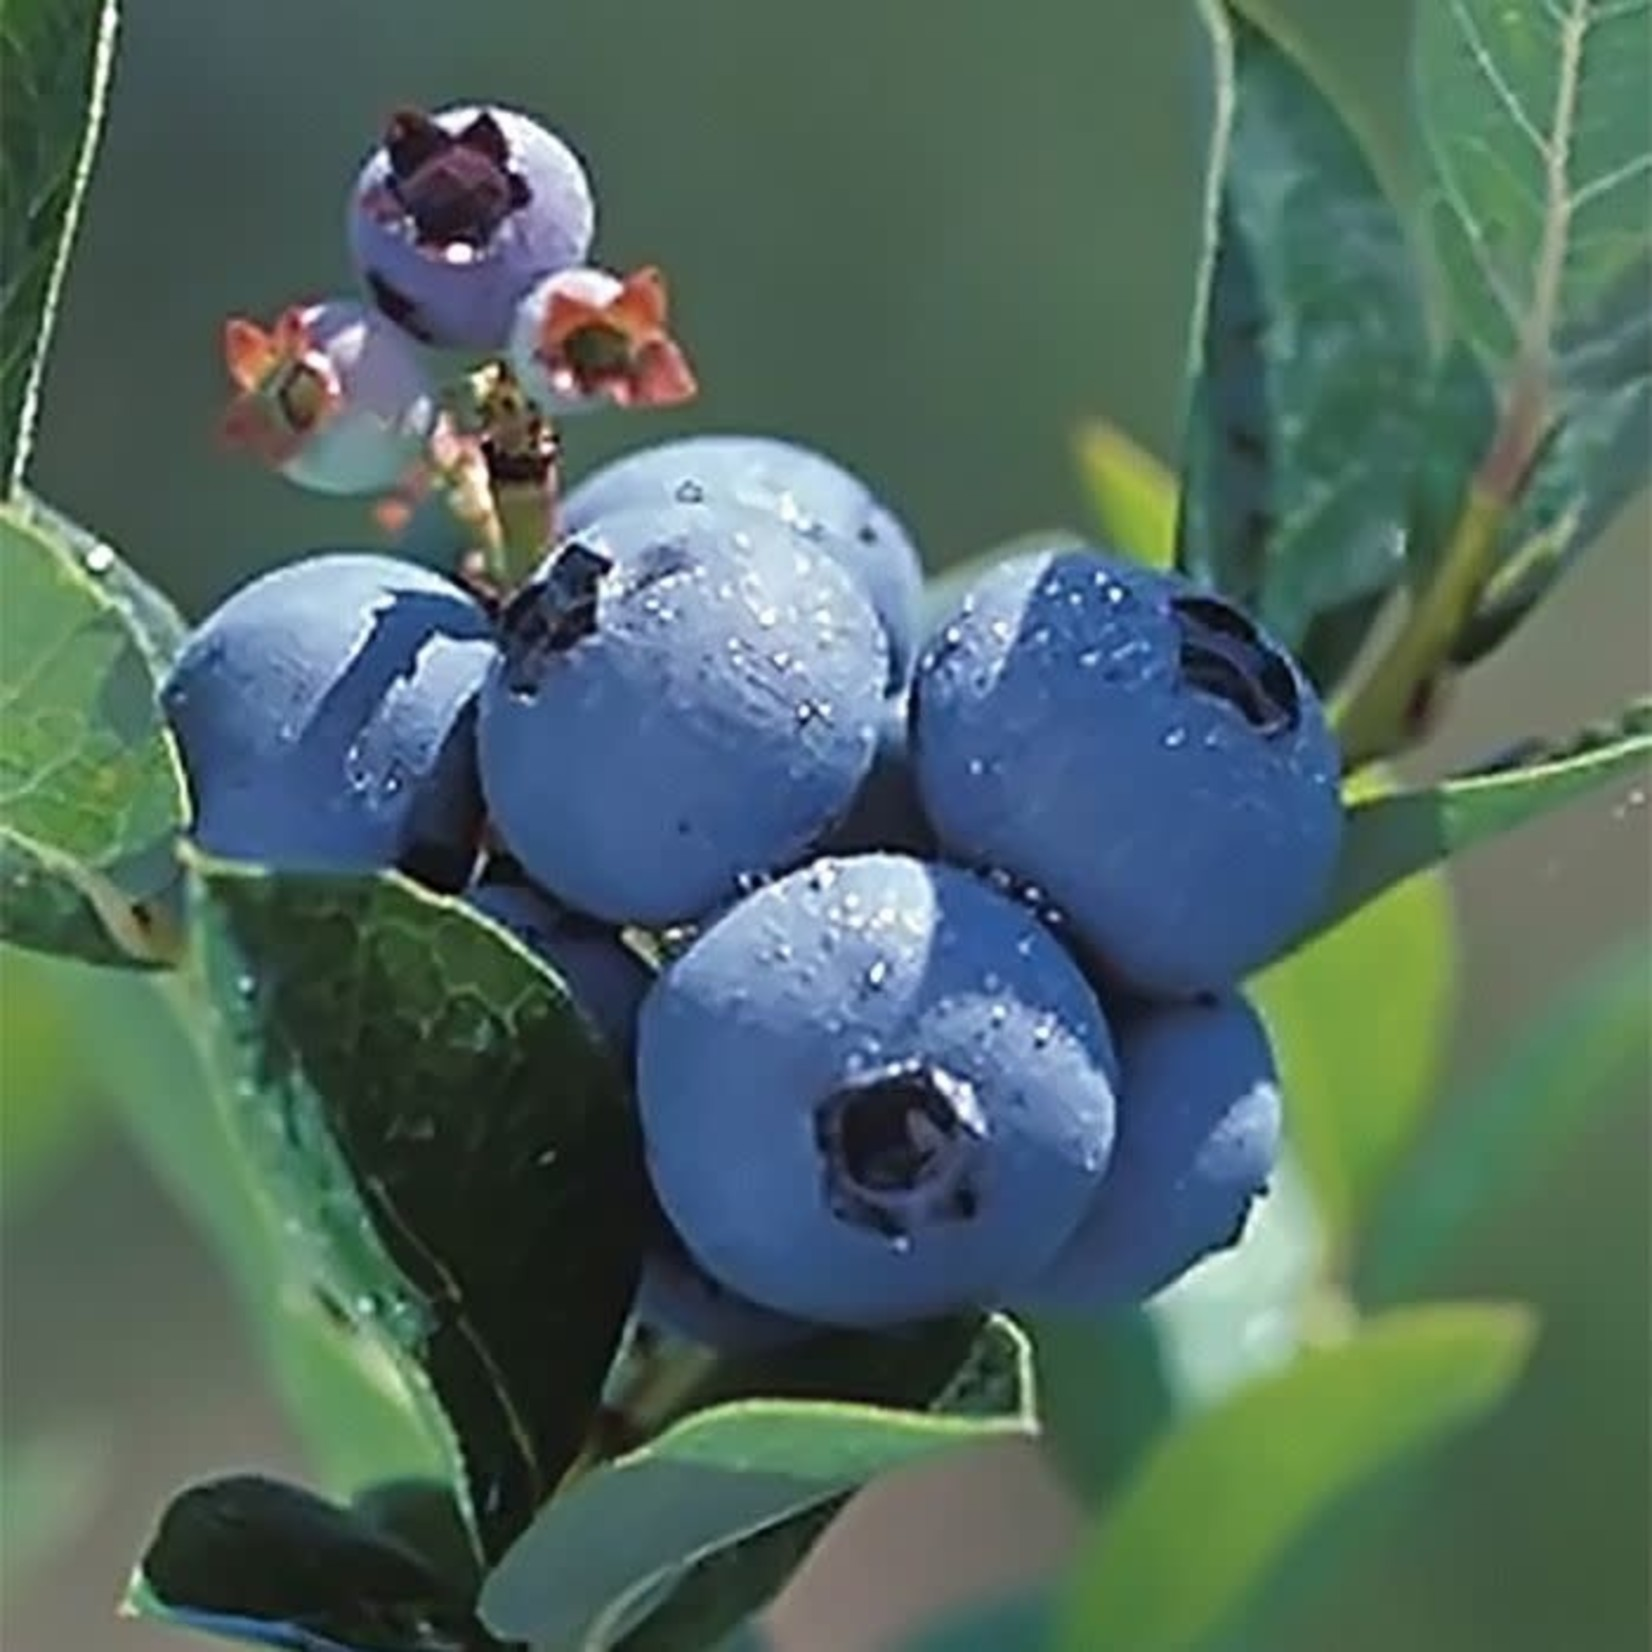 Blueberry - Vaccinium 'Polaris' - 2 gal